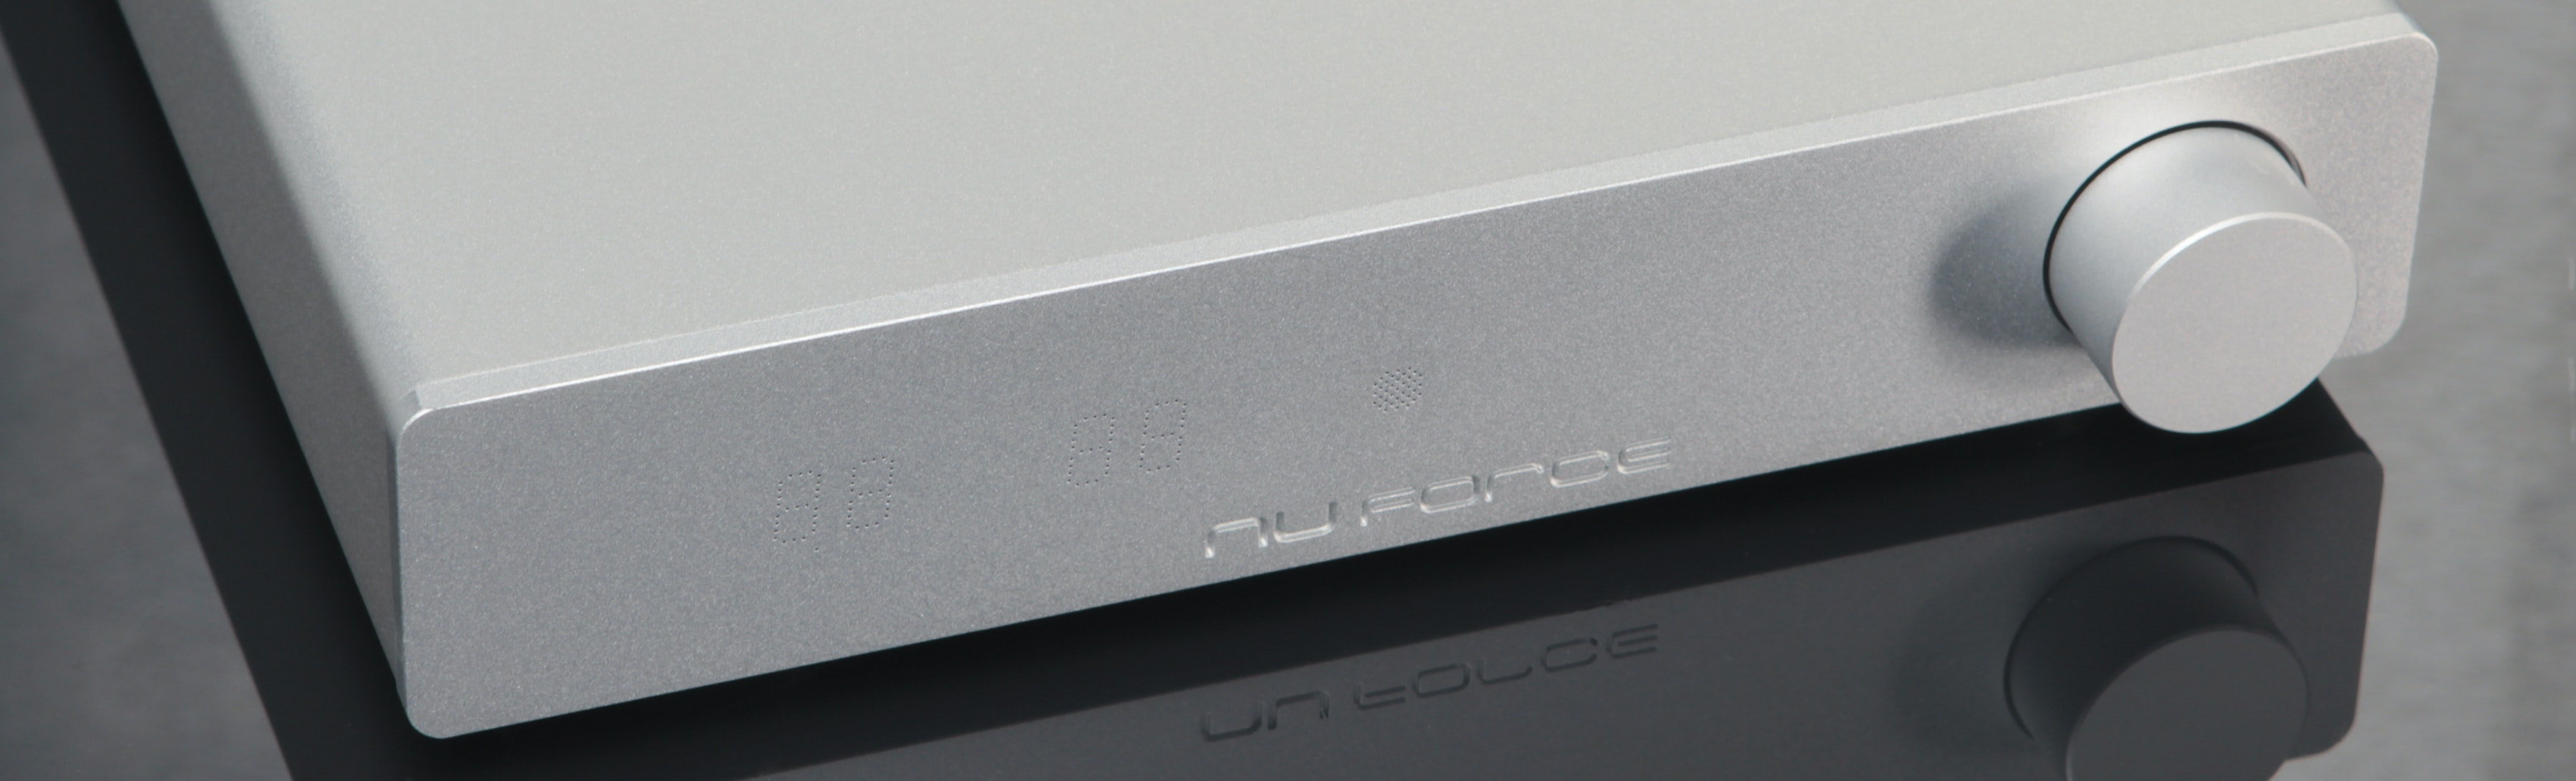 Nuforce DDA120 Integrated Amp/DAC